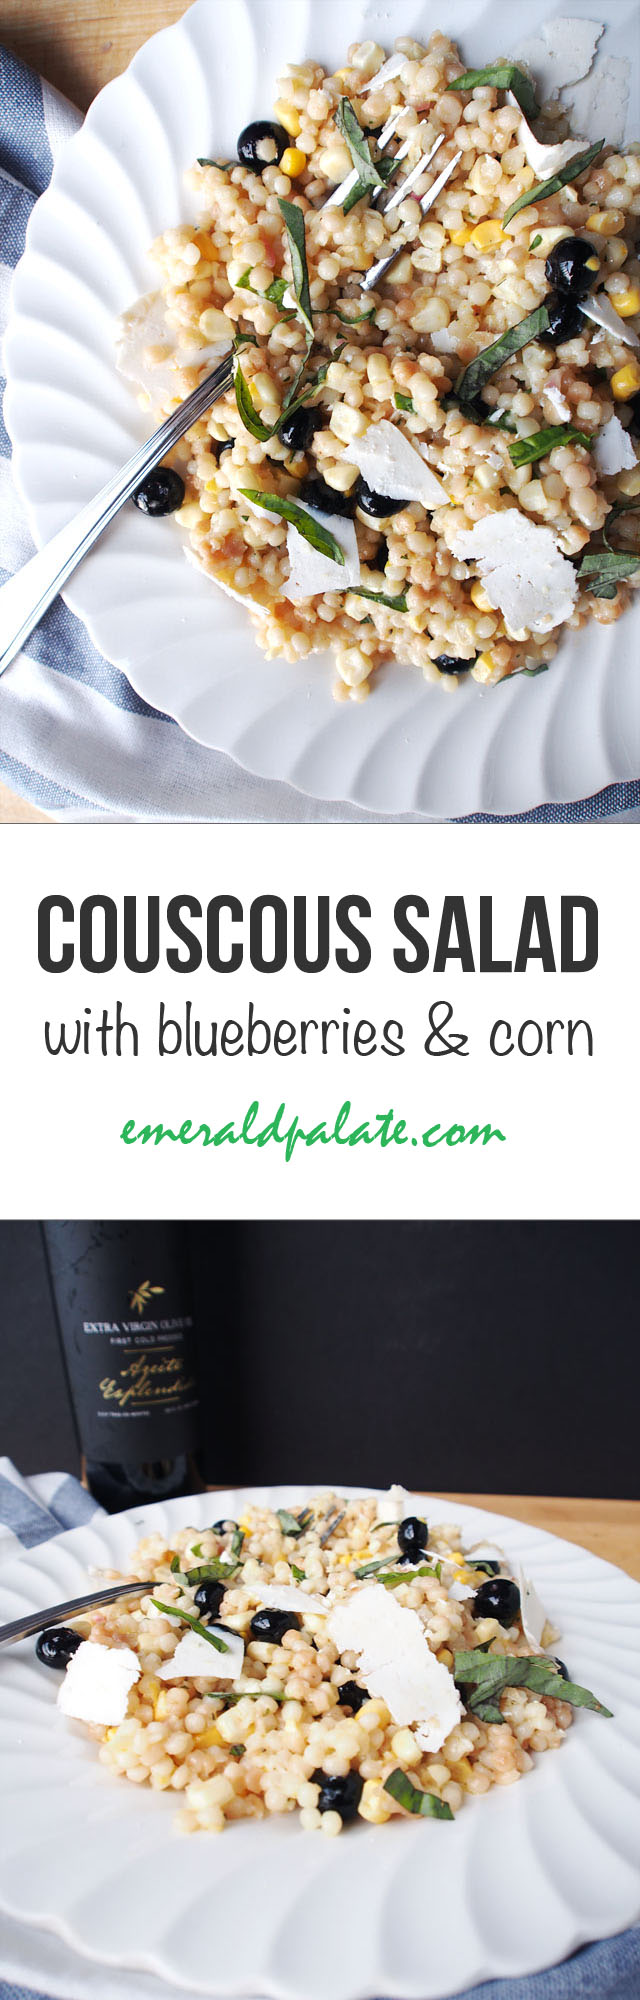 This Israeli couscous salad recipe has blueberries, fresh corn, and Esplendido Douro extra virgin olive oil. It's about to be your new favorite, easy summer recipe!